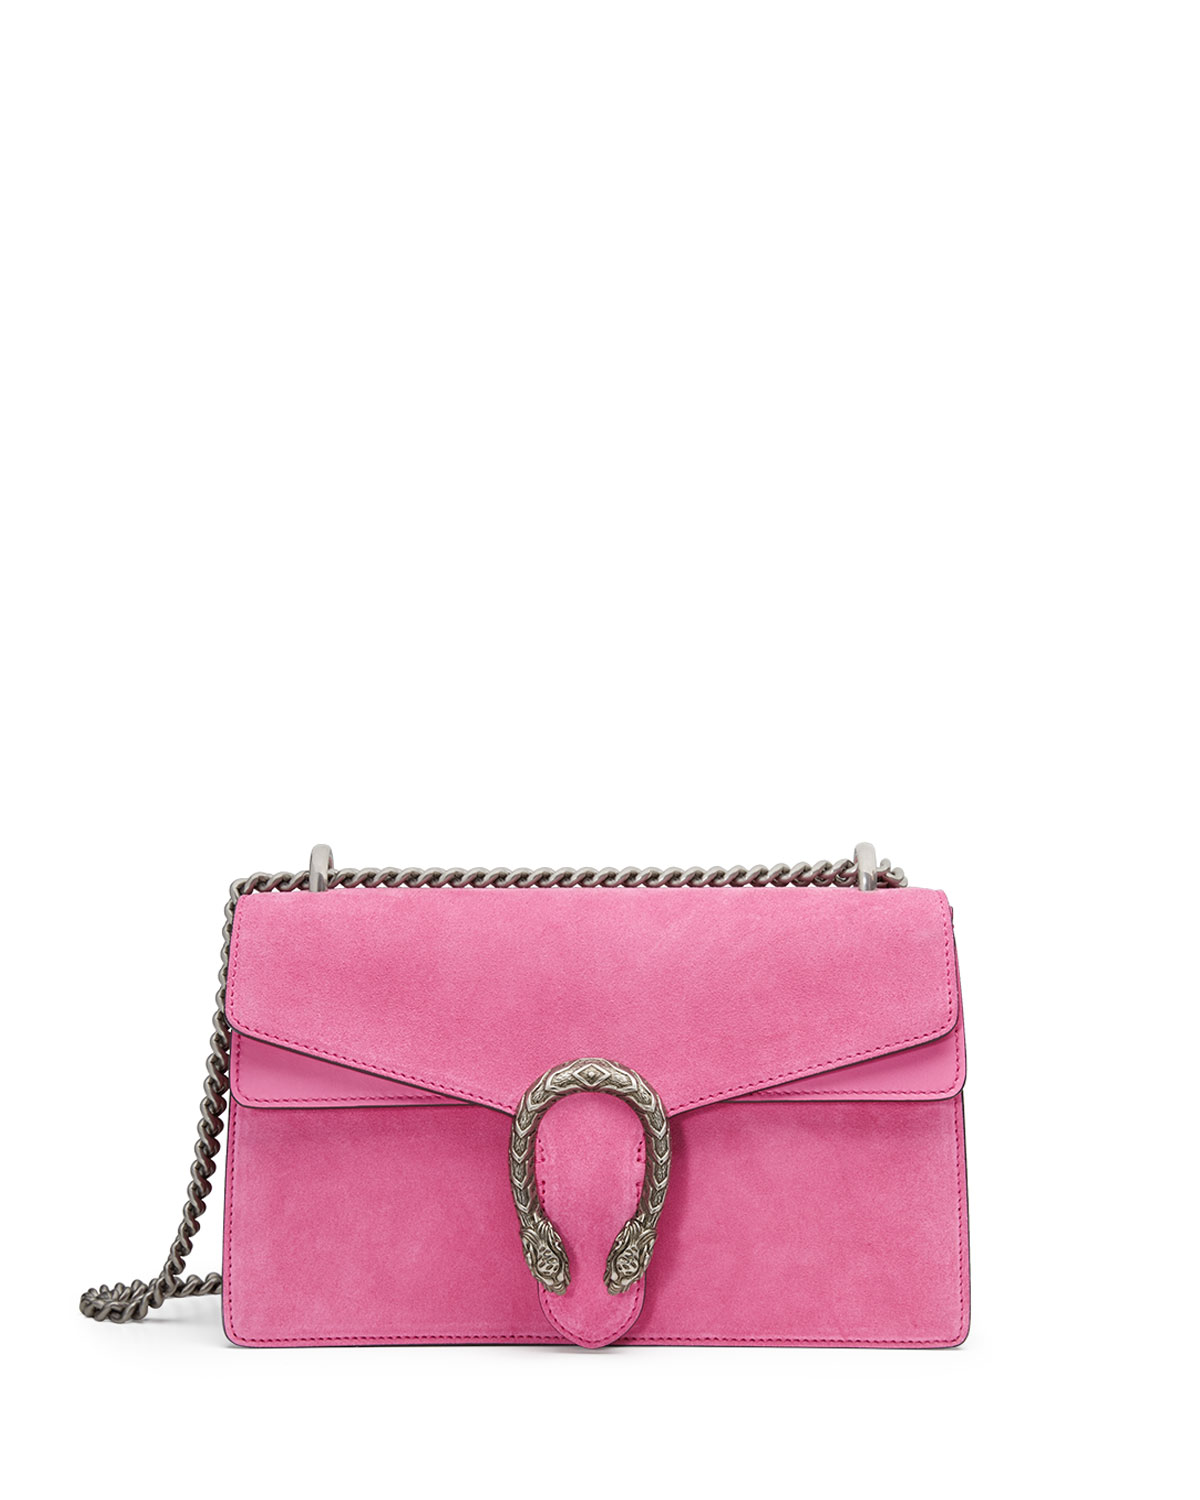 Gucci Dionysus Small Suede Shoulder Bag, Bright Pink | Neiman Marcus